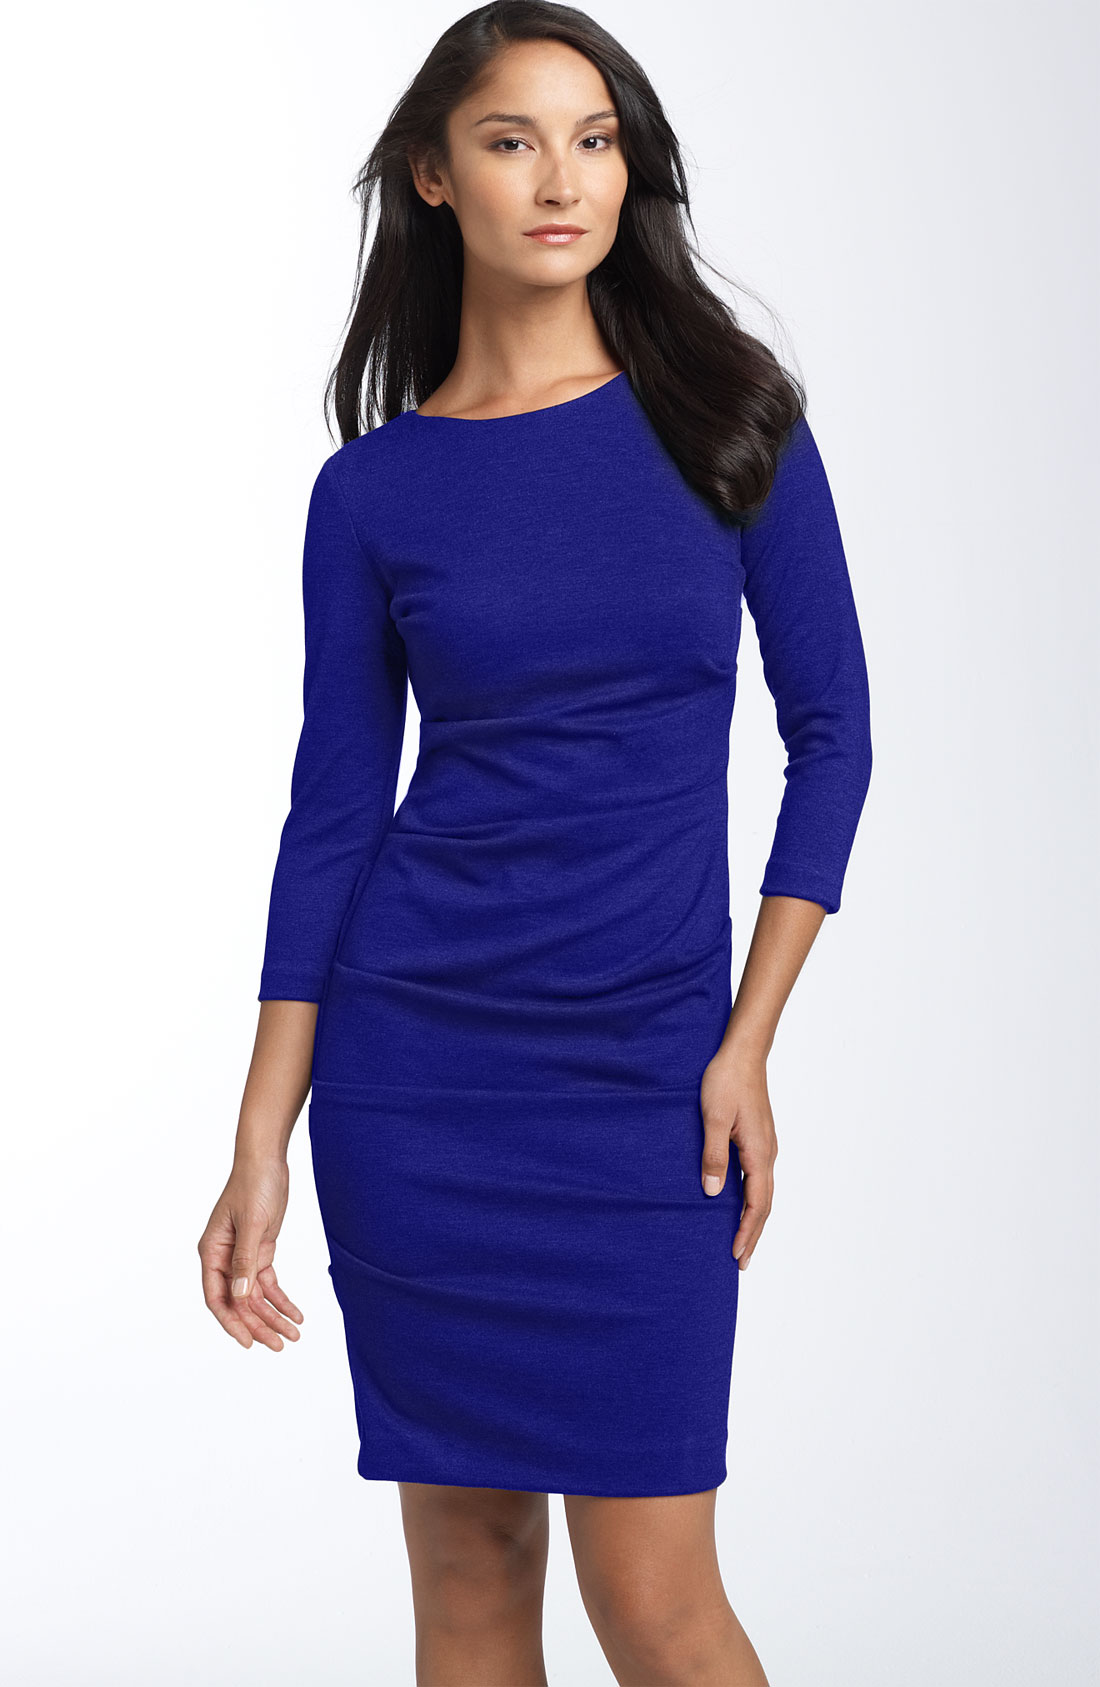 Nicole Miller Ruched Ponte Knit Sheath Dress in Blue